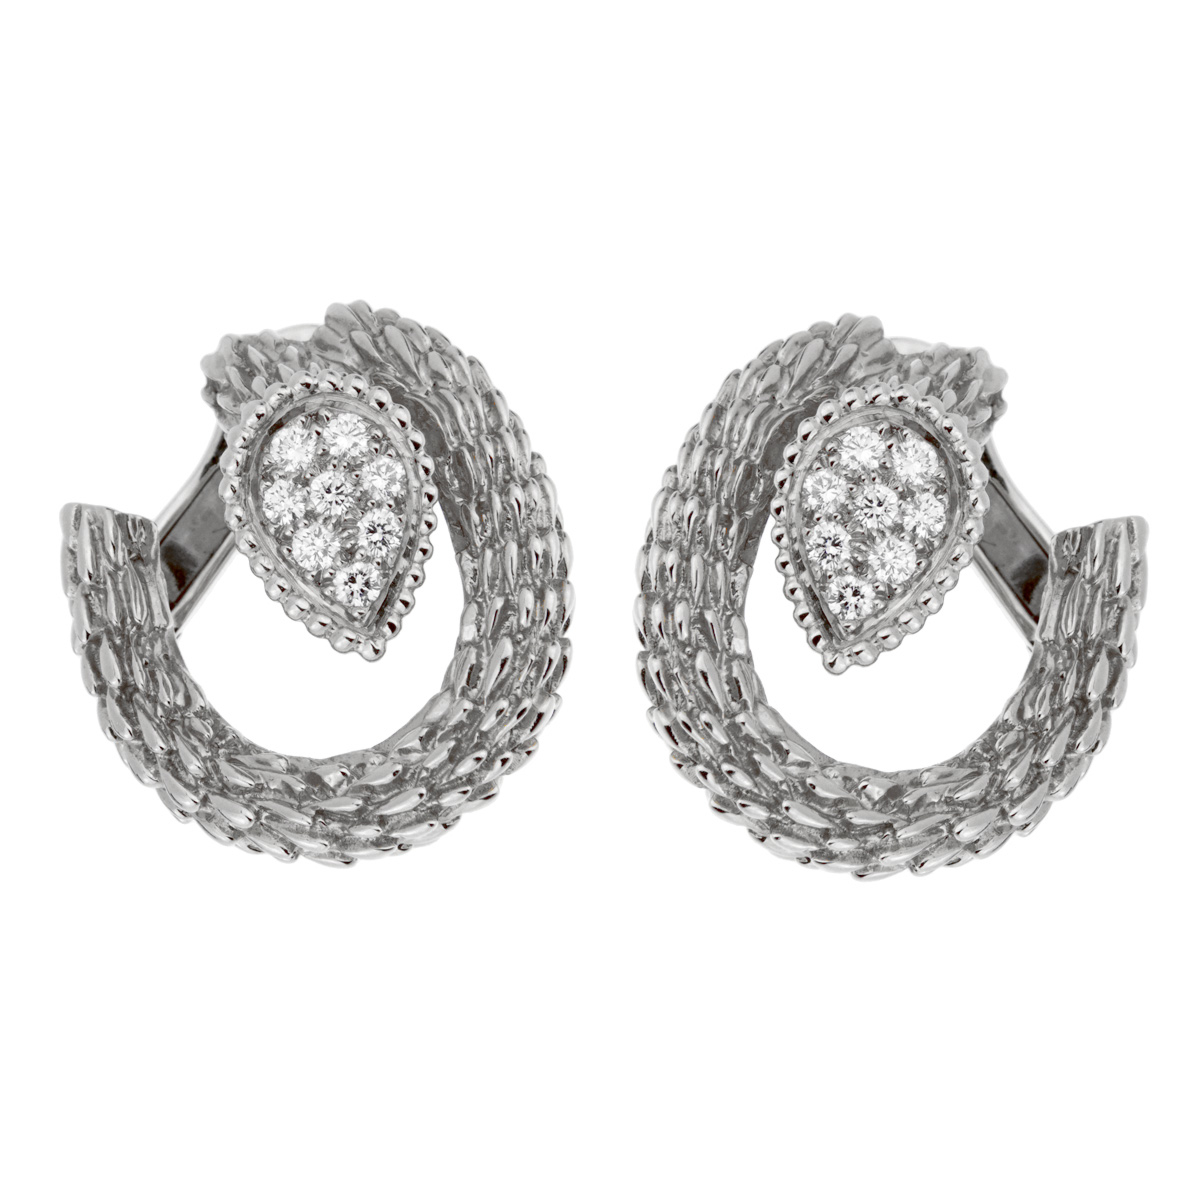 Boucheron Serpent Boheme White Gold Diamond Hoop Earrings - Boucheron Jewelry